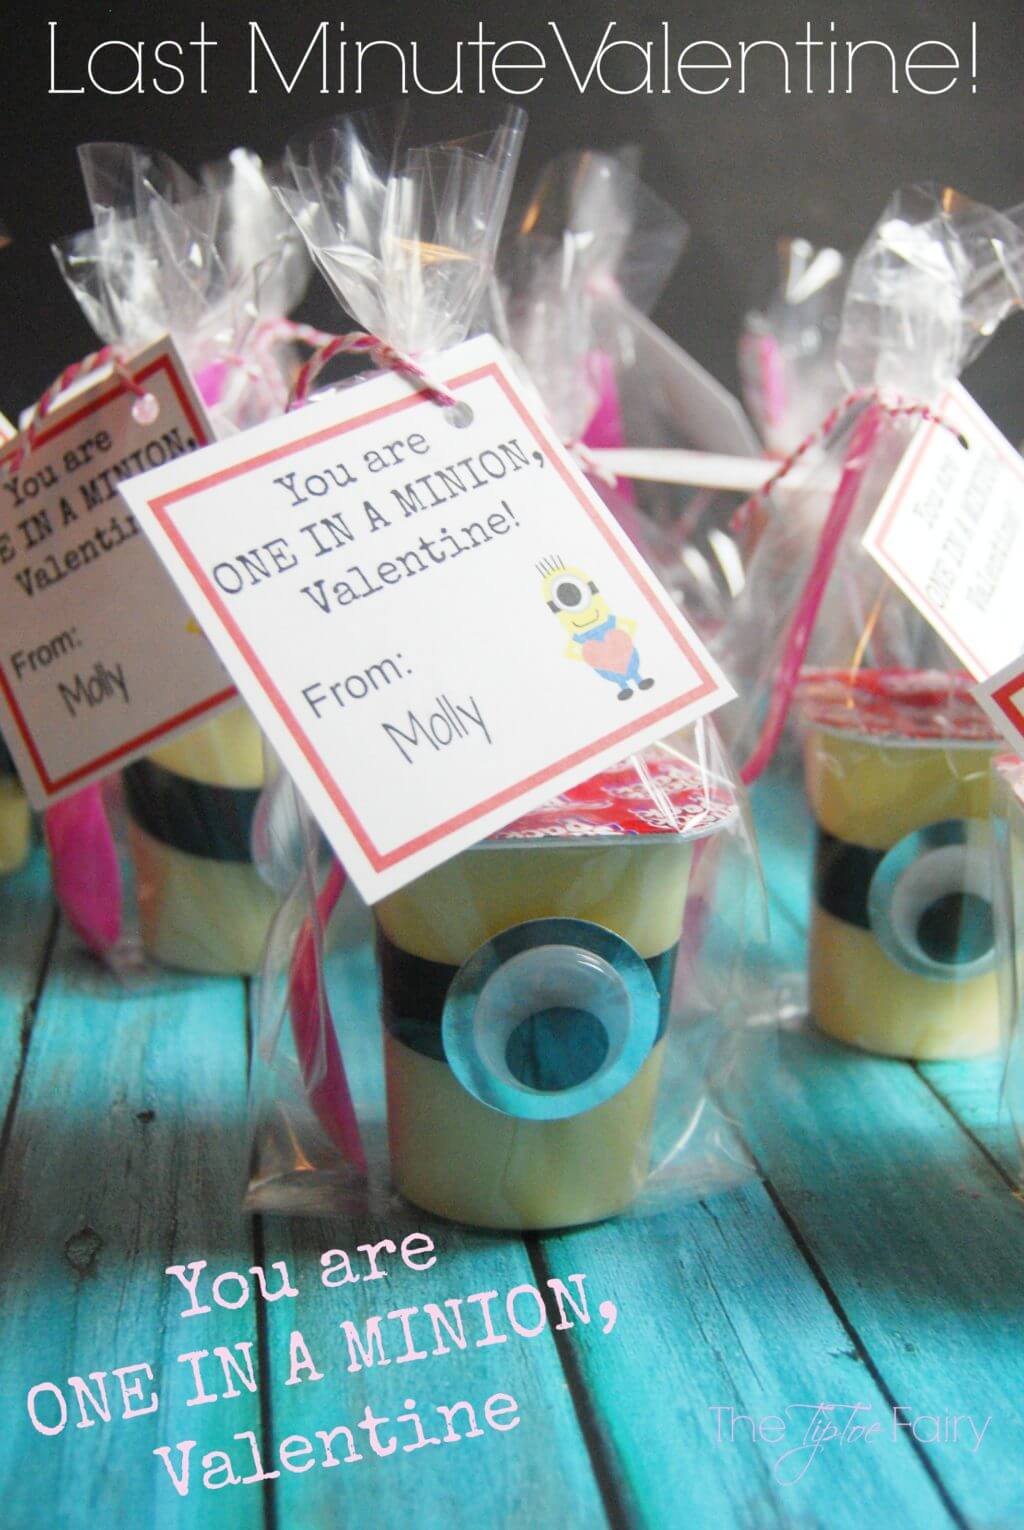 Last Minute Valentines   You Are One In A Minion, Valentine! | The .